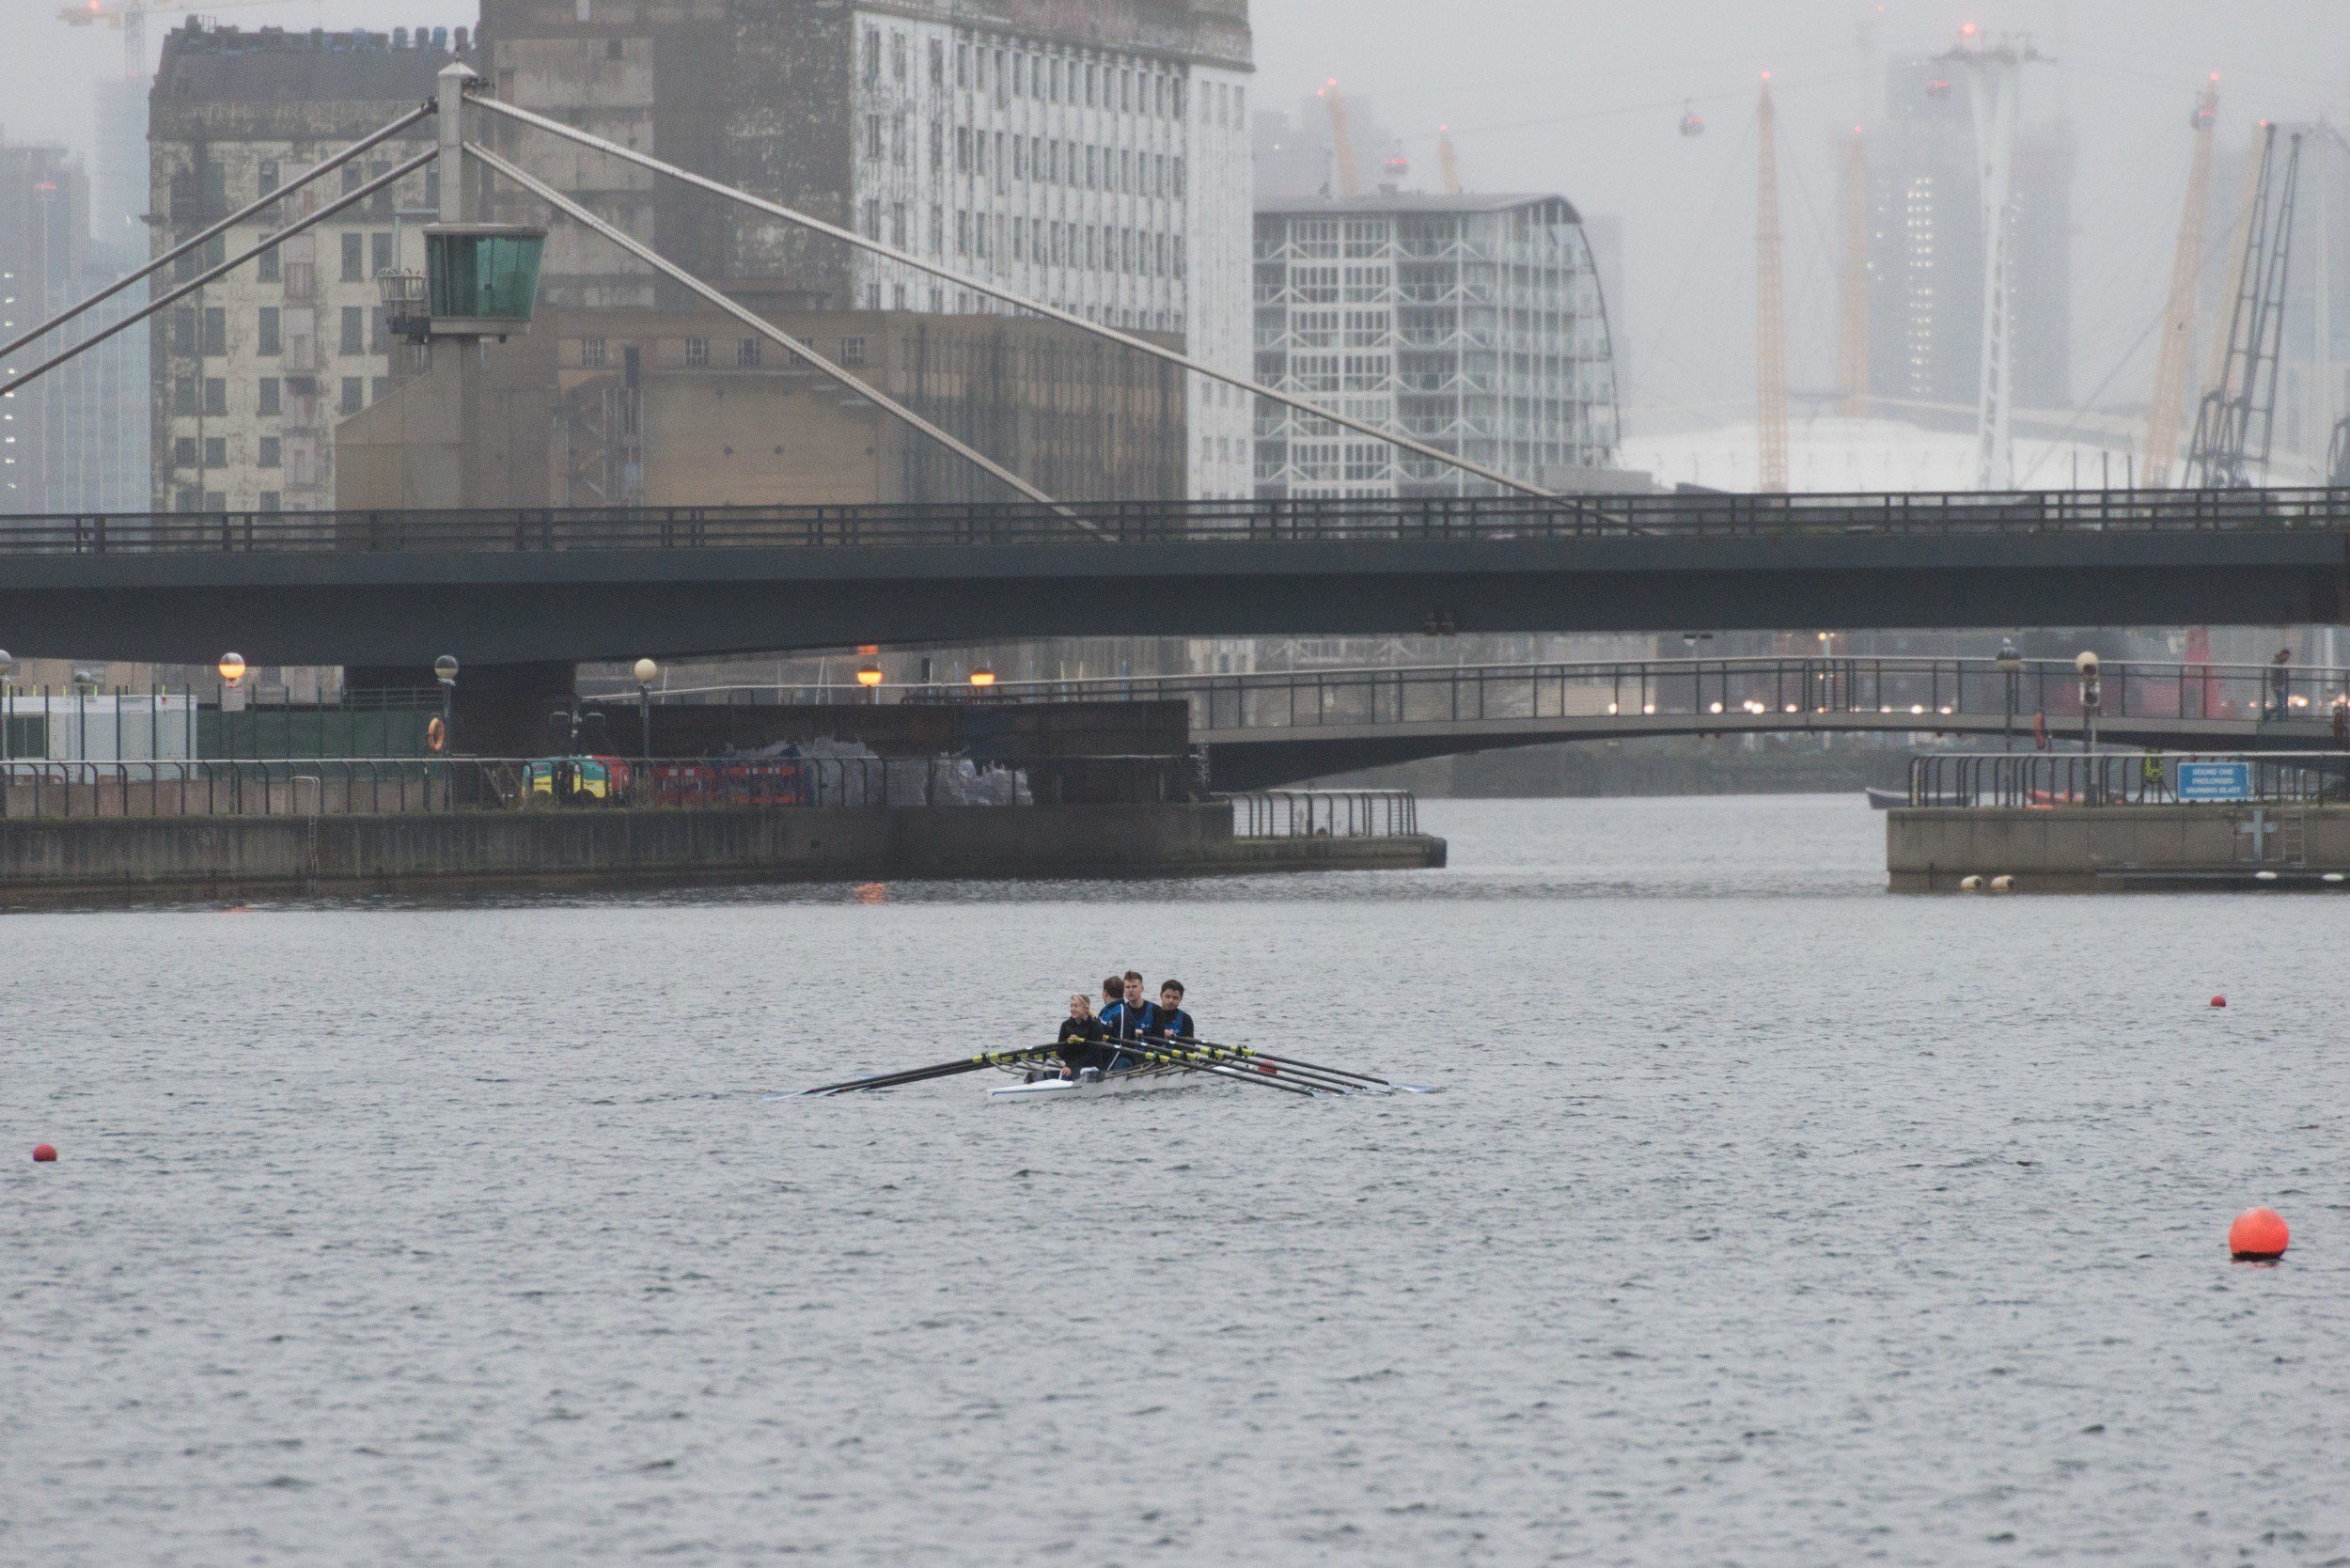 Scene of the docks with a rowing boat and the O2 visible in the background